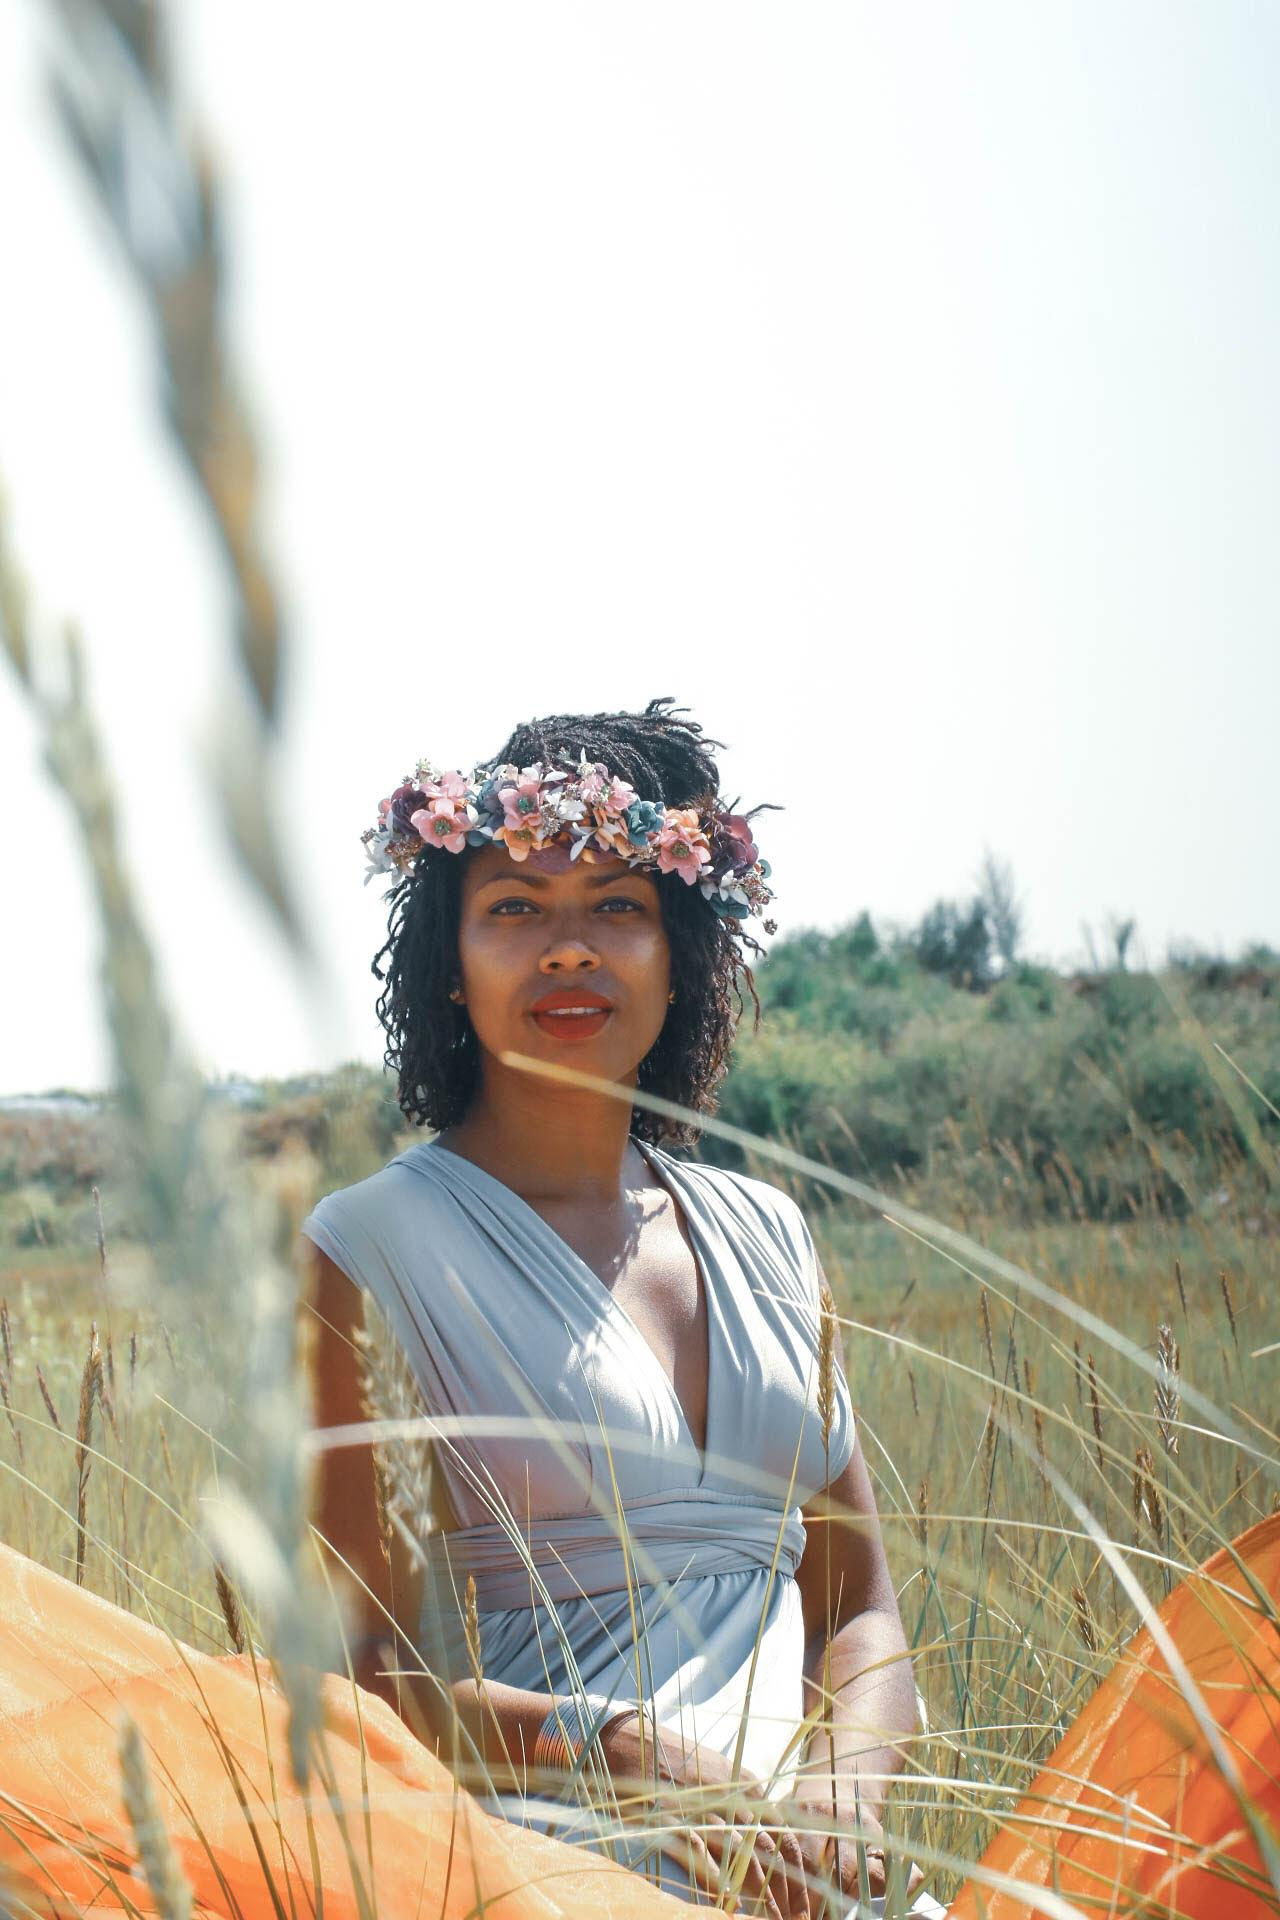 Jenny, in a floral headress, smiles behind grains that are out of focus in the foreground.